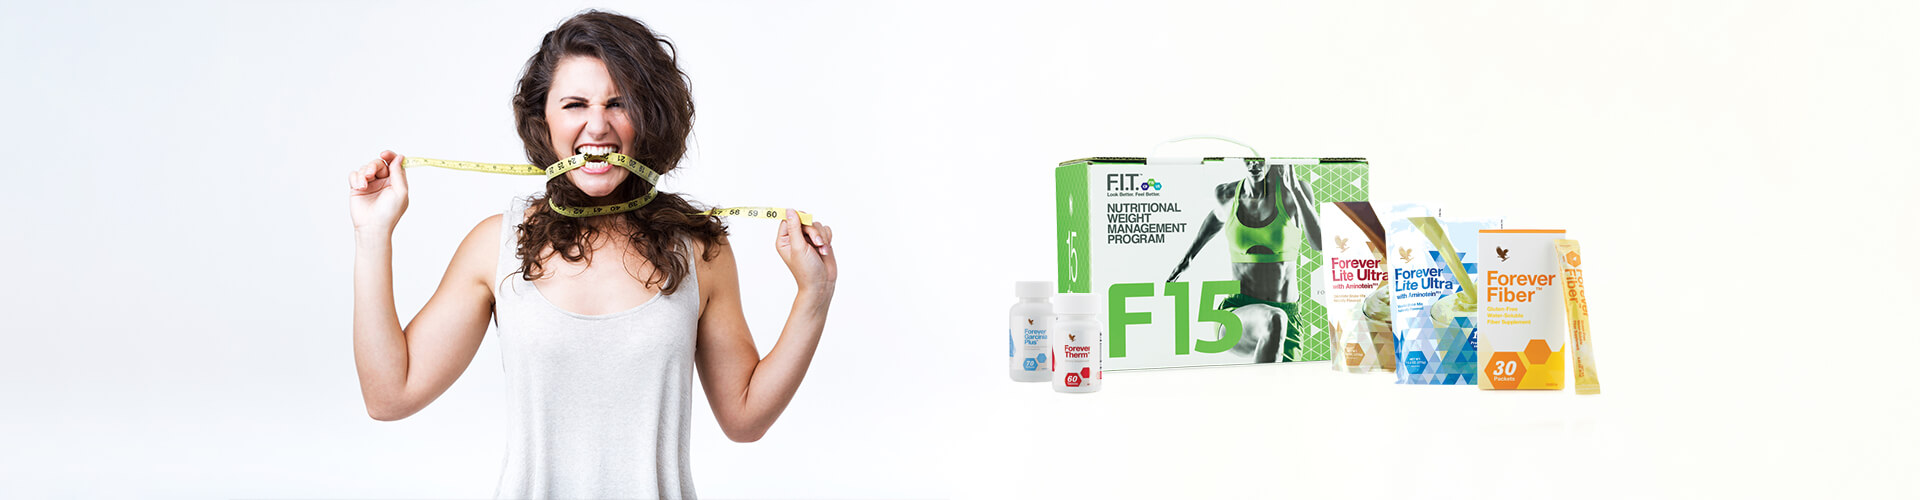 Forever Living F15 - Weight Management - Aloe Cache